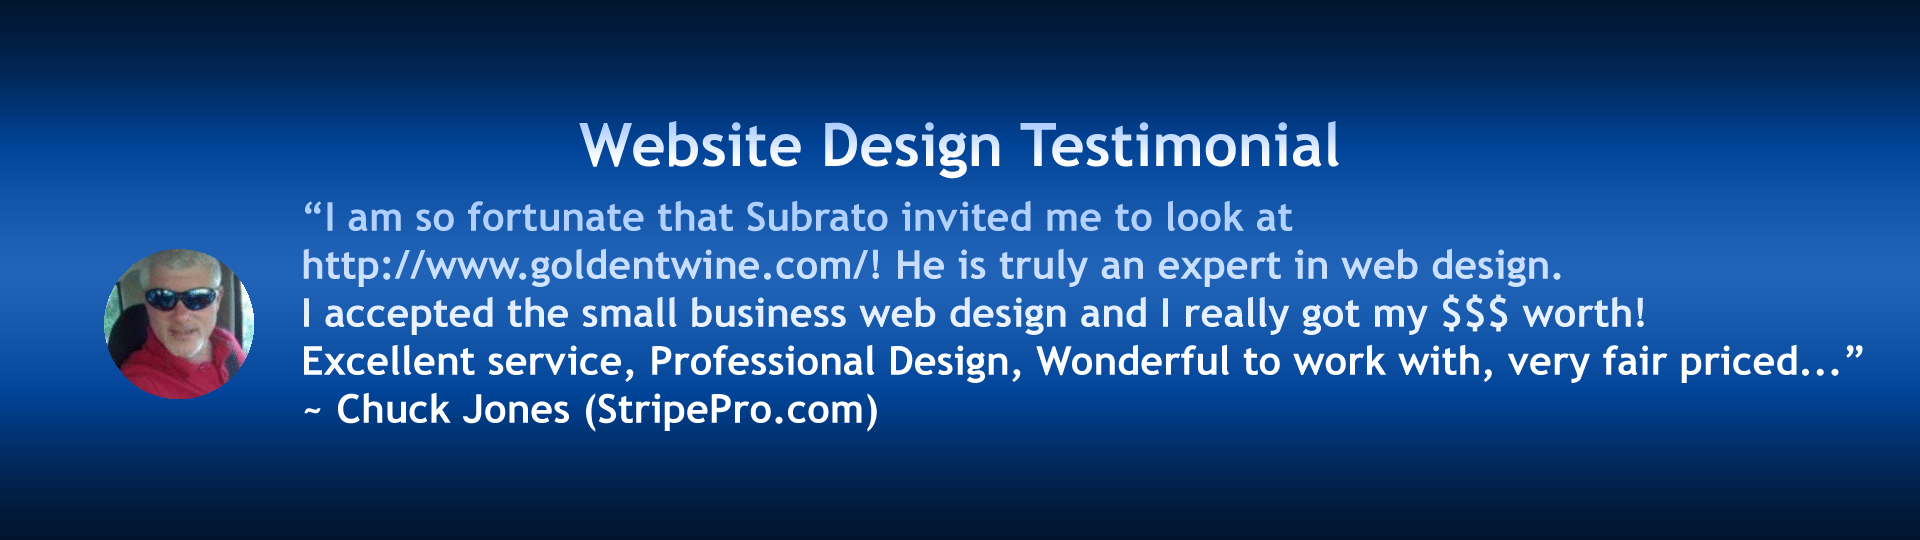 Slide 7 - Website Design Testimonials and Endorsements